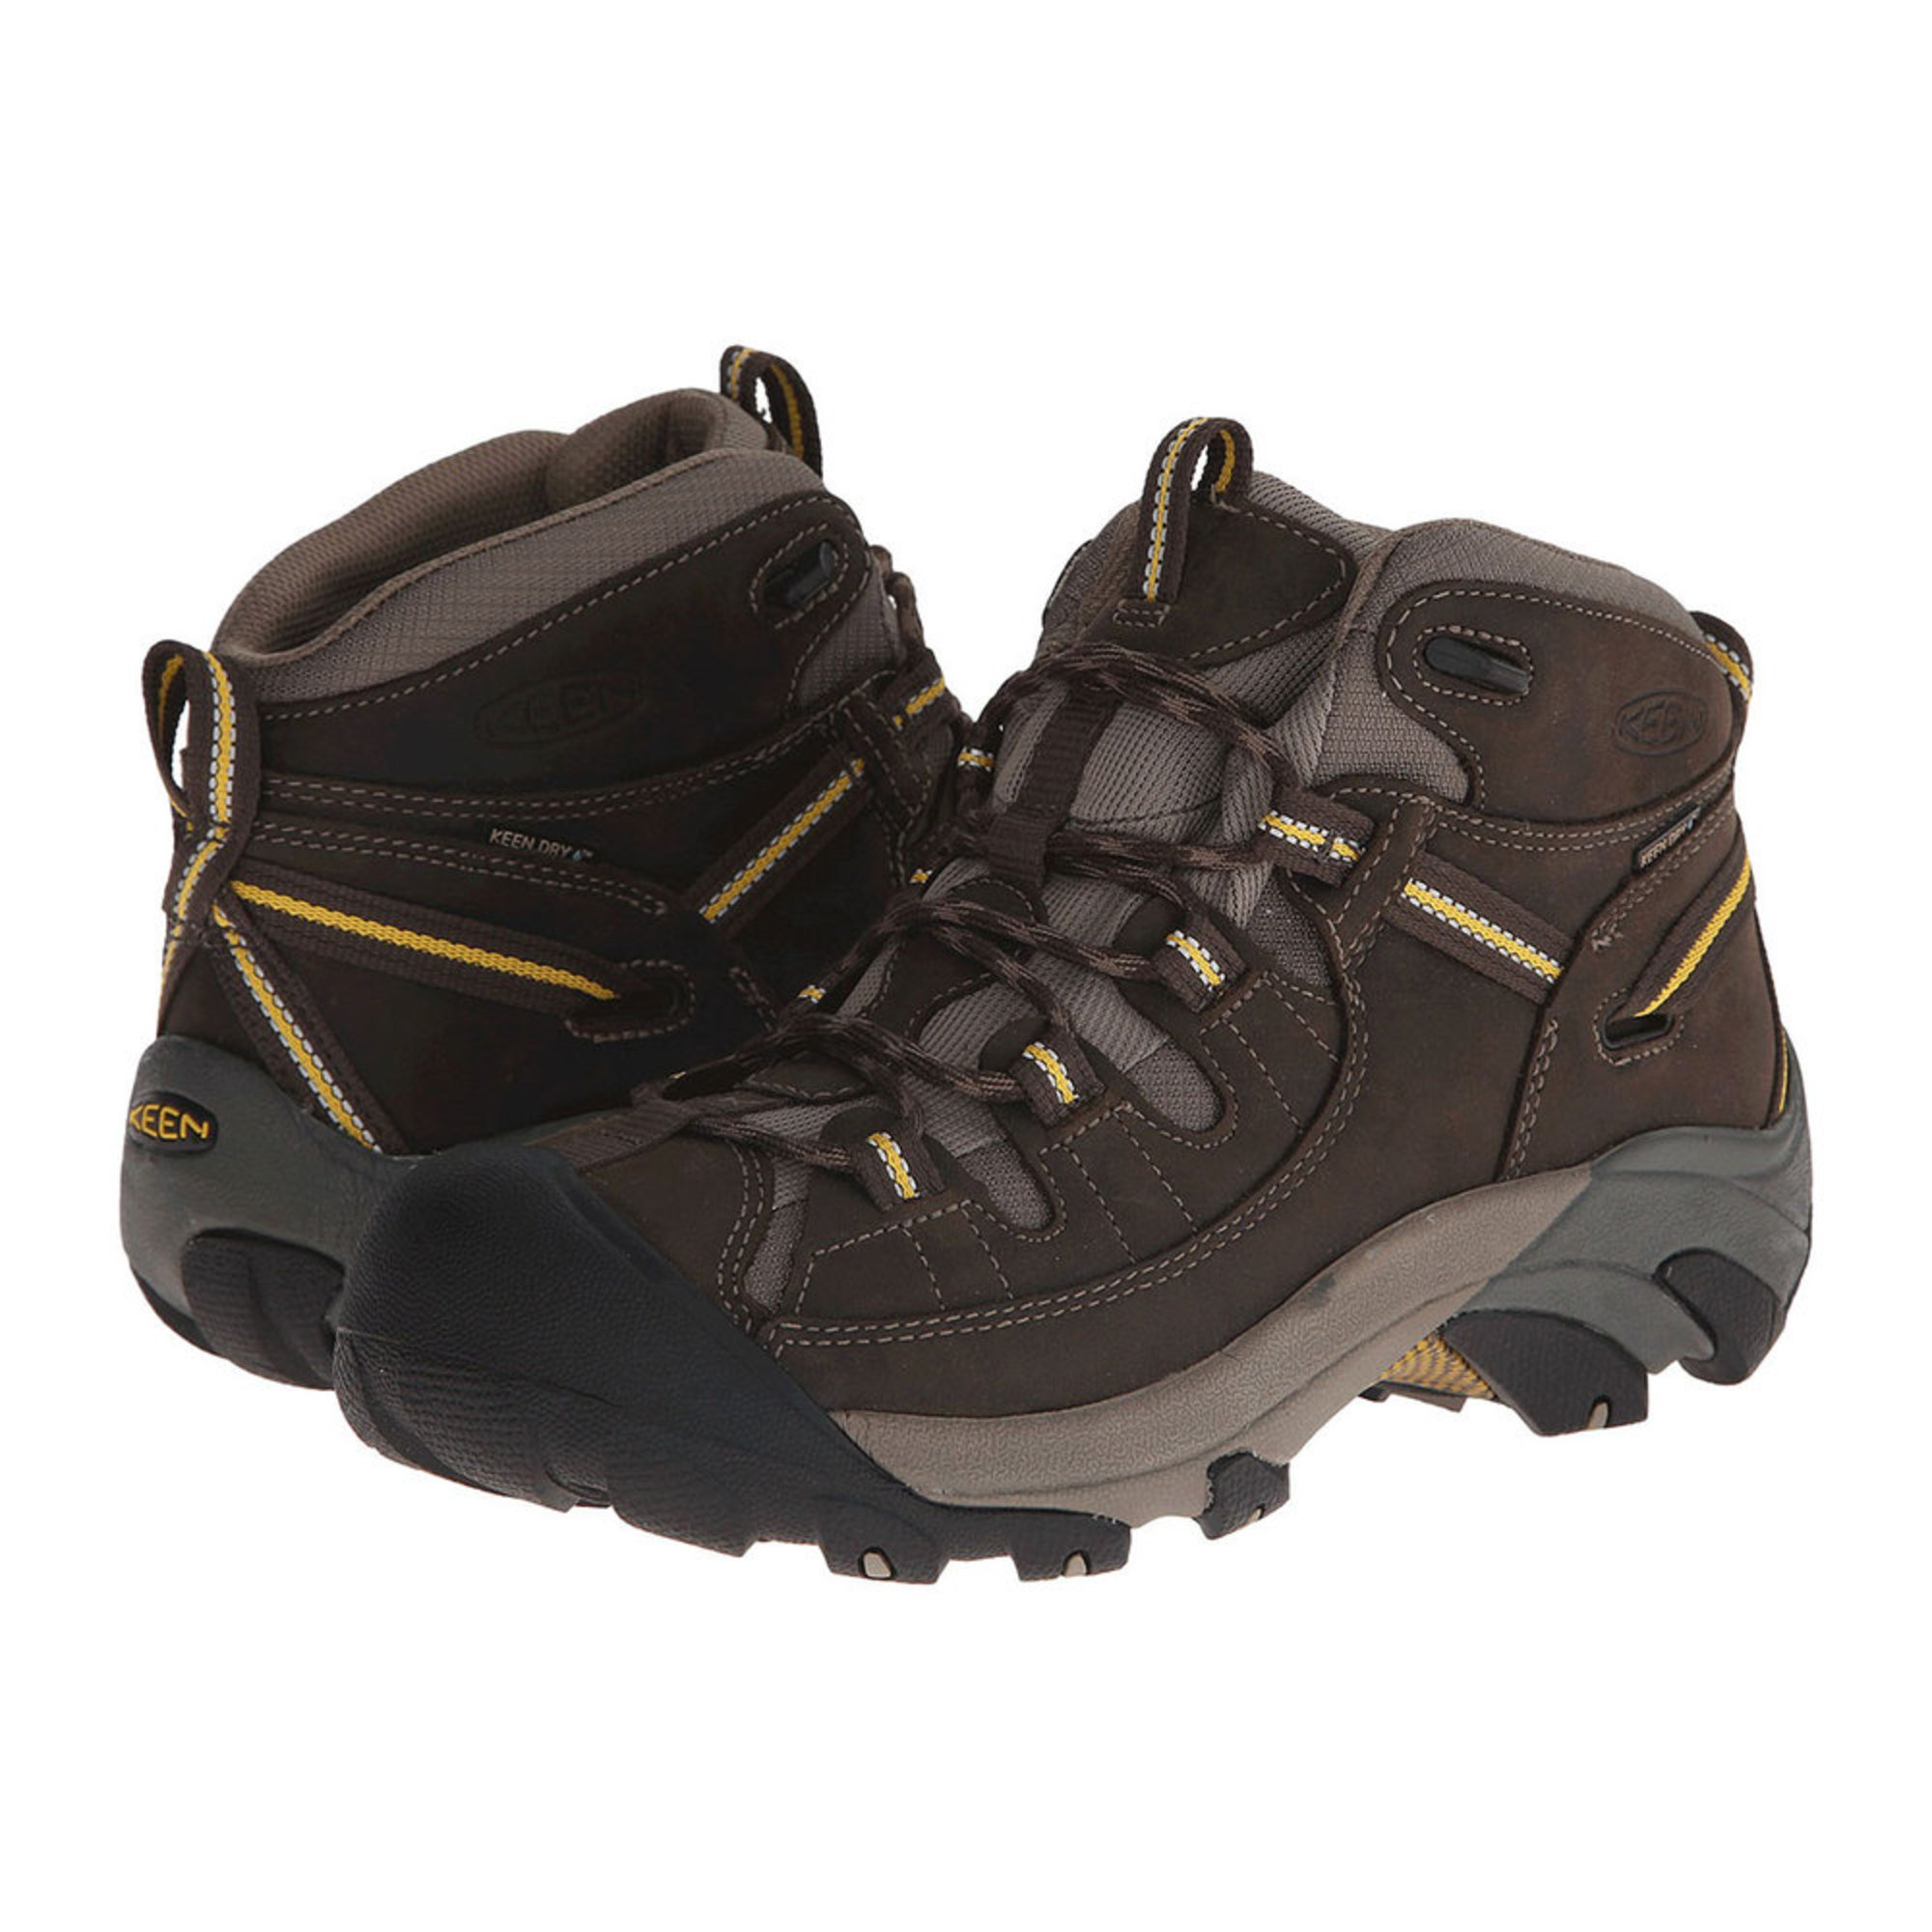 a741b647247 Keen Men s Targhee Ii Mid Waterproof Hiking Boot